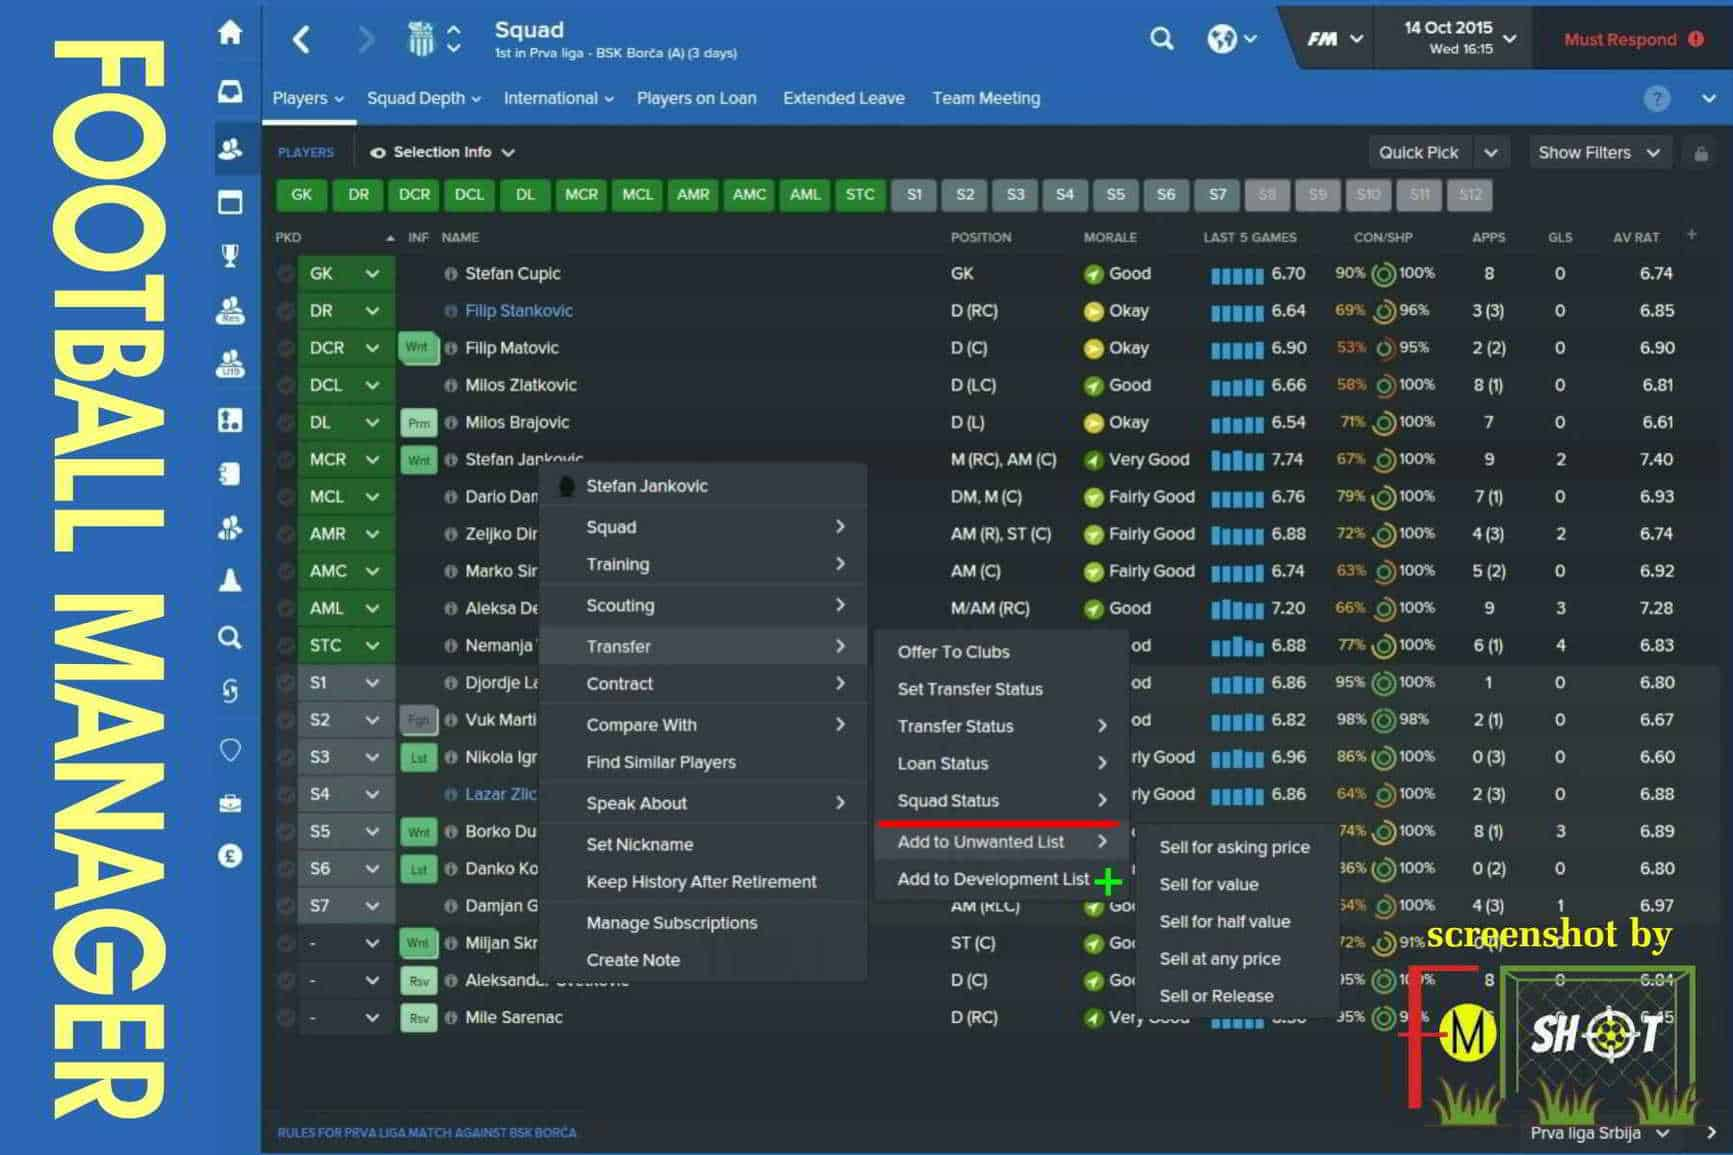 FM Option Add to List